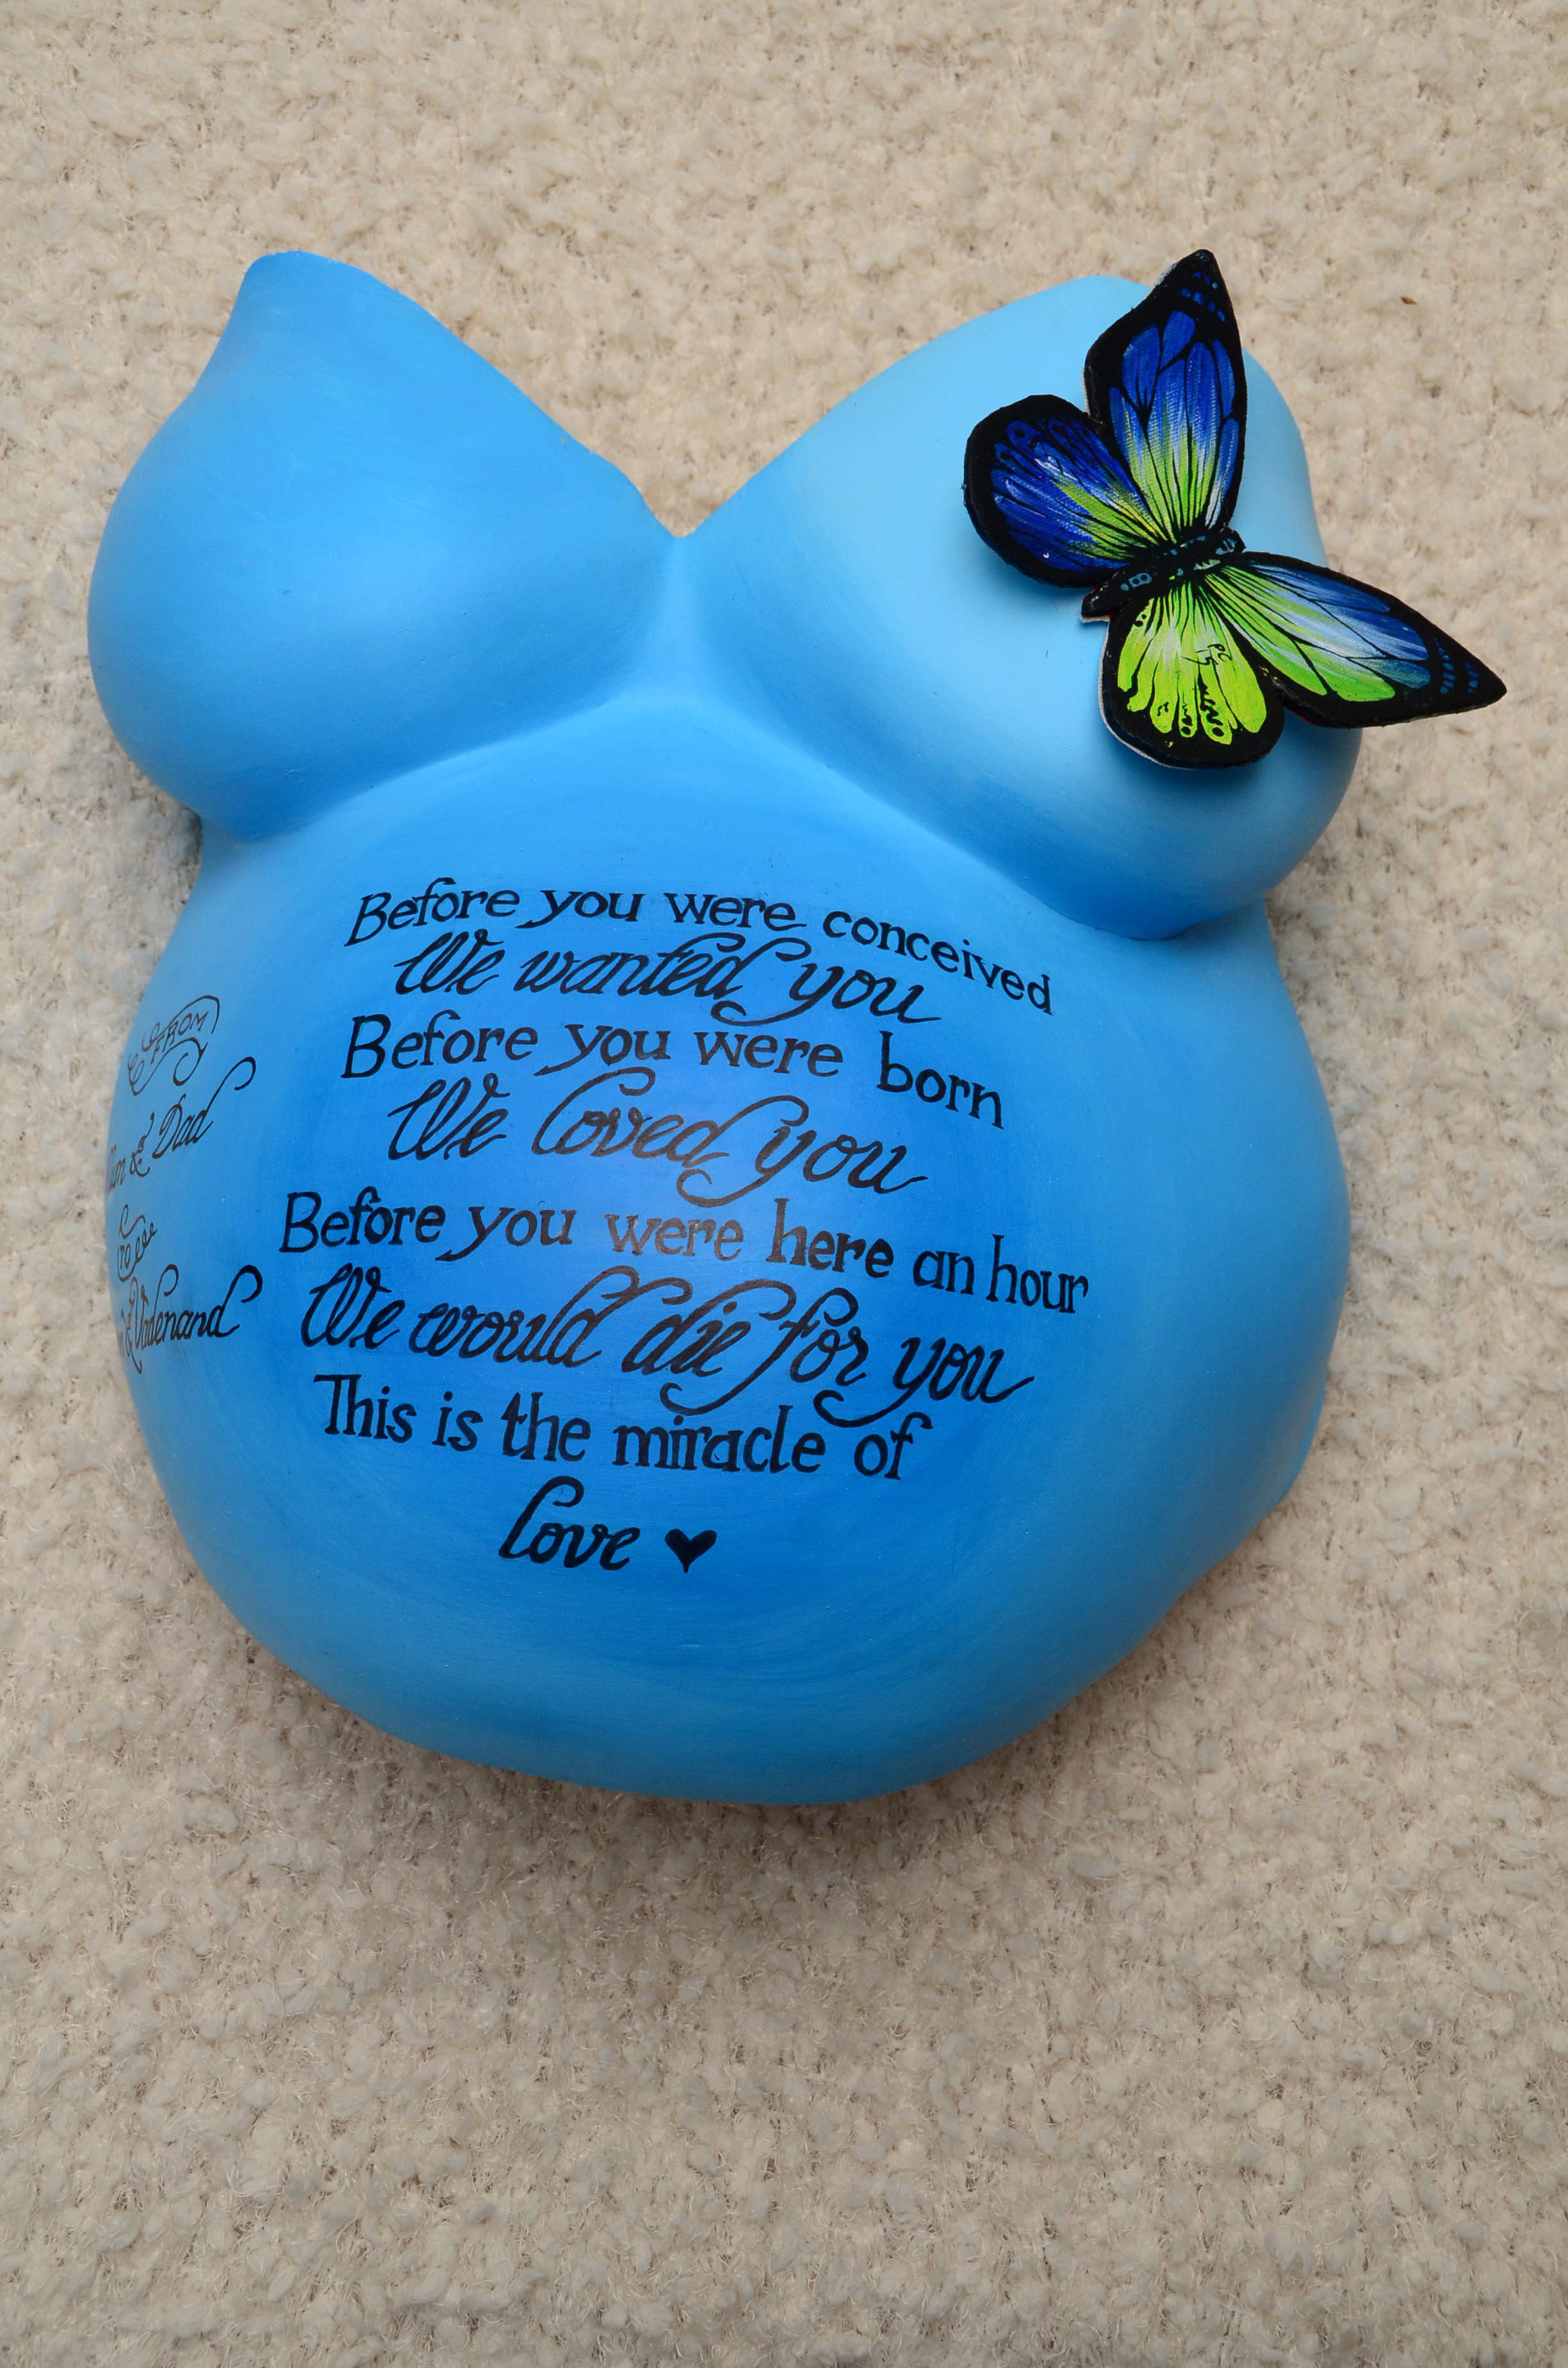 Andre gift to his wife.